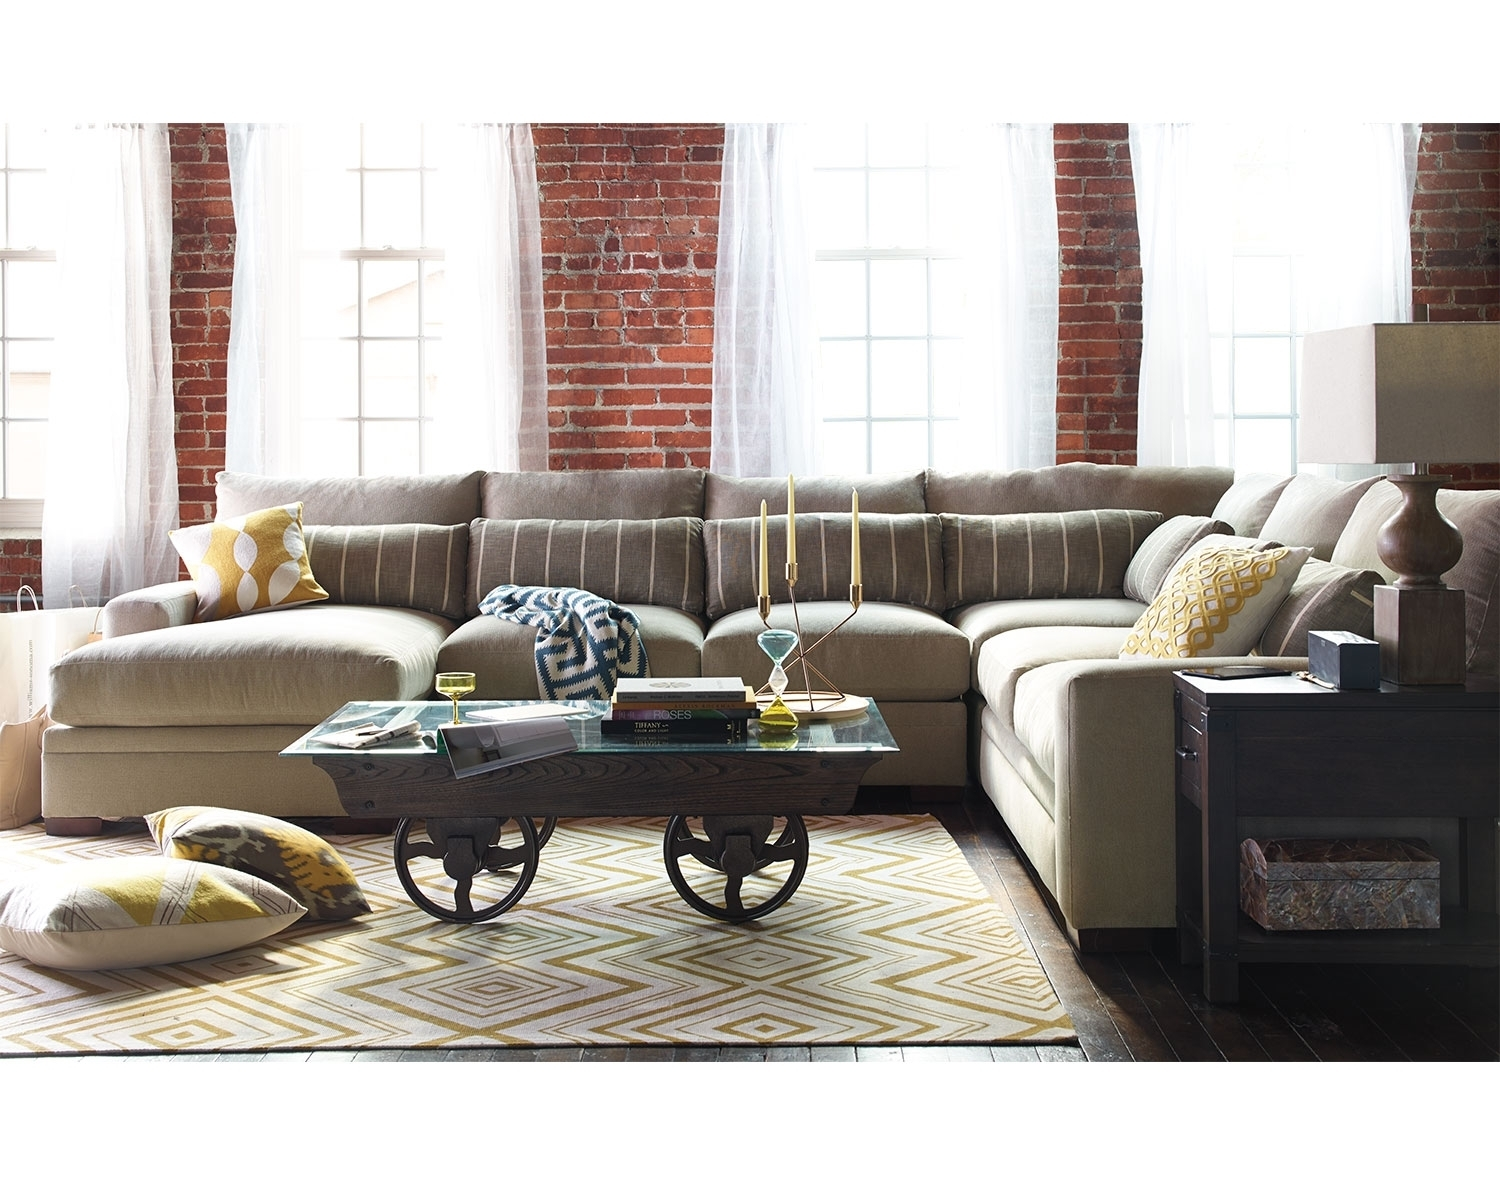 My Favorite!!! But It Cost $2999!!!!!!! The Ventura Collection Intended For Kansas City Sectional Sofas (Image 5 of 10)